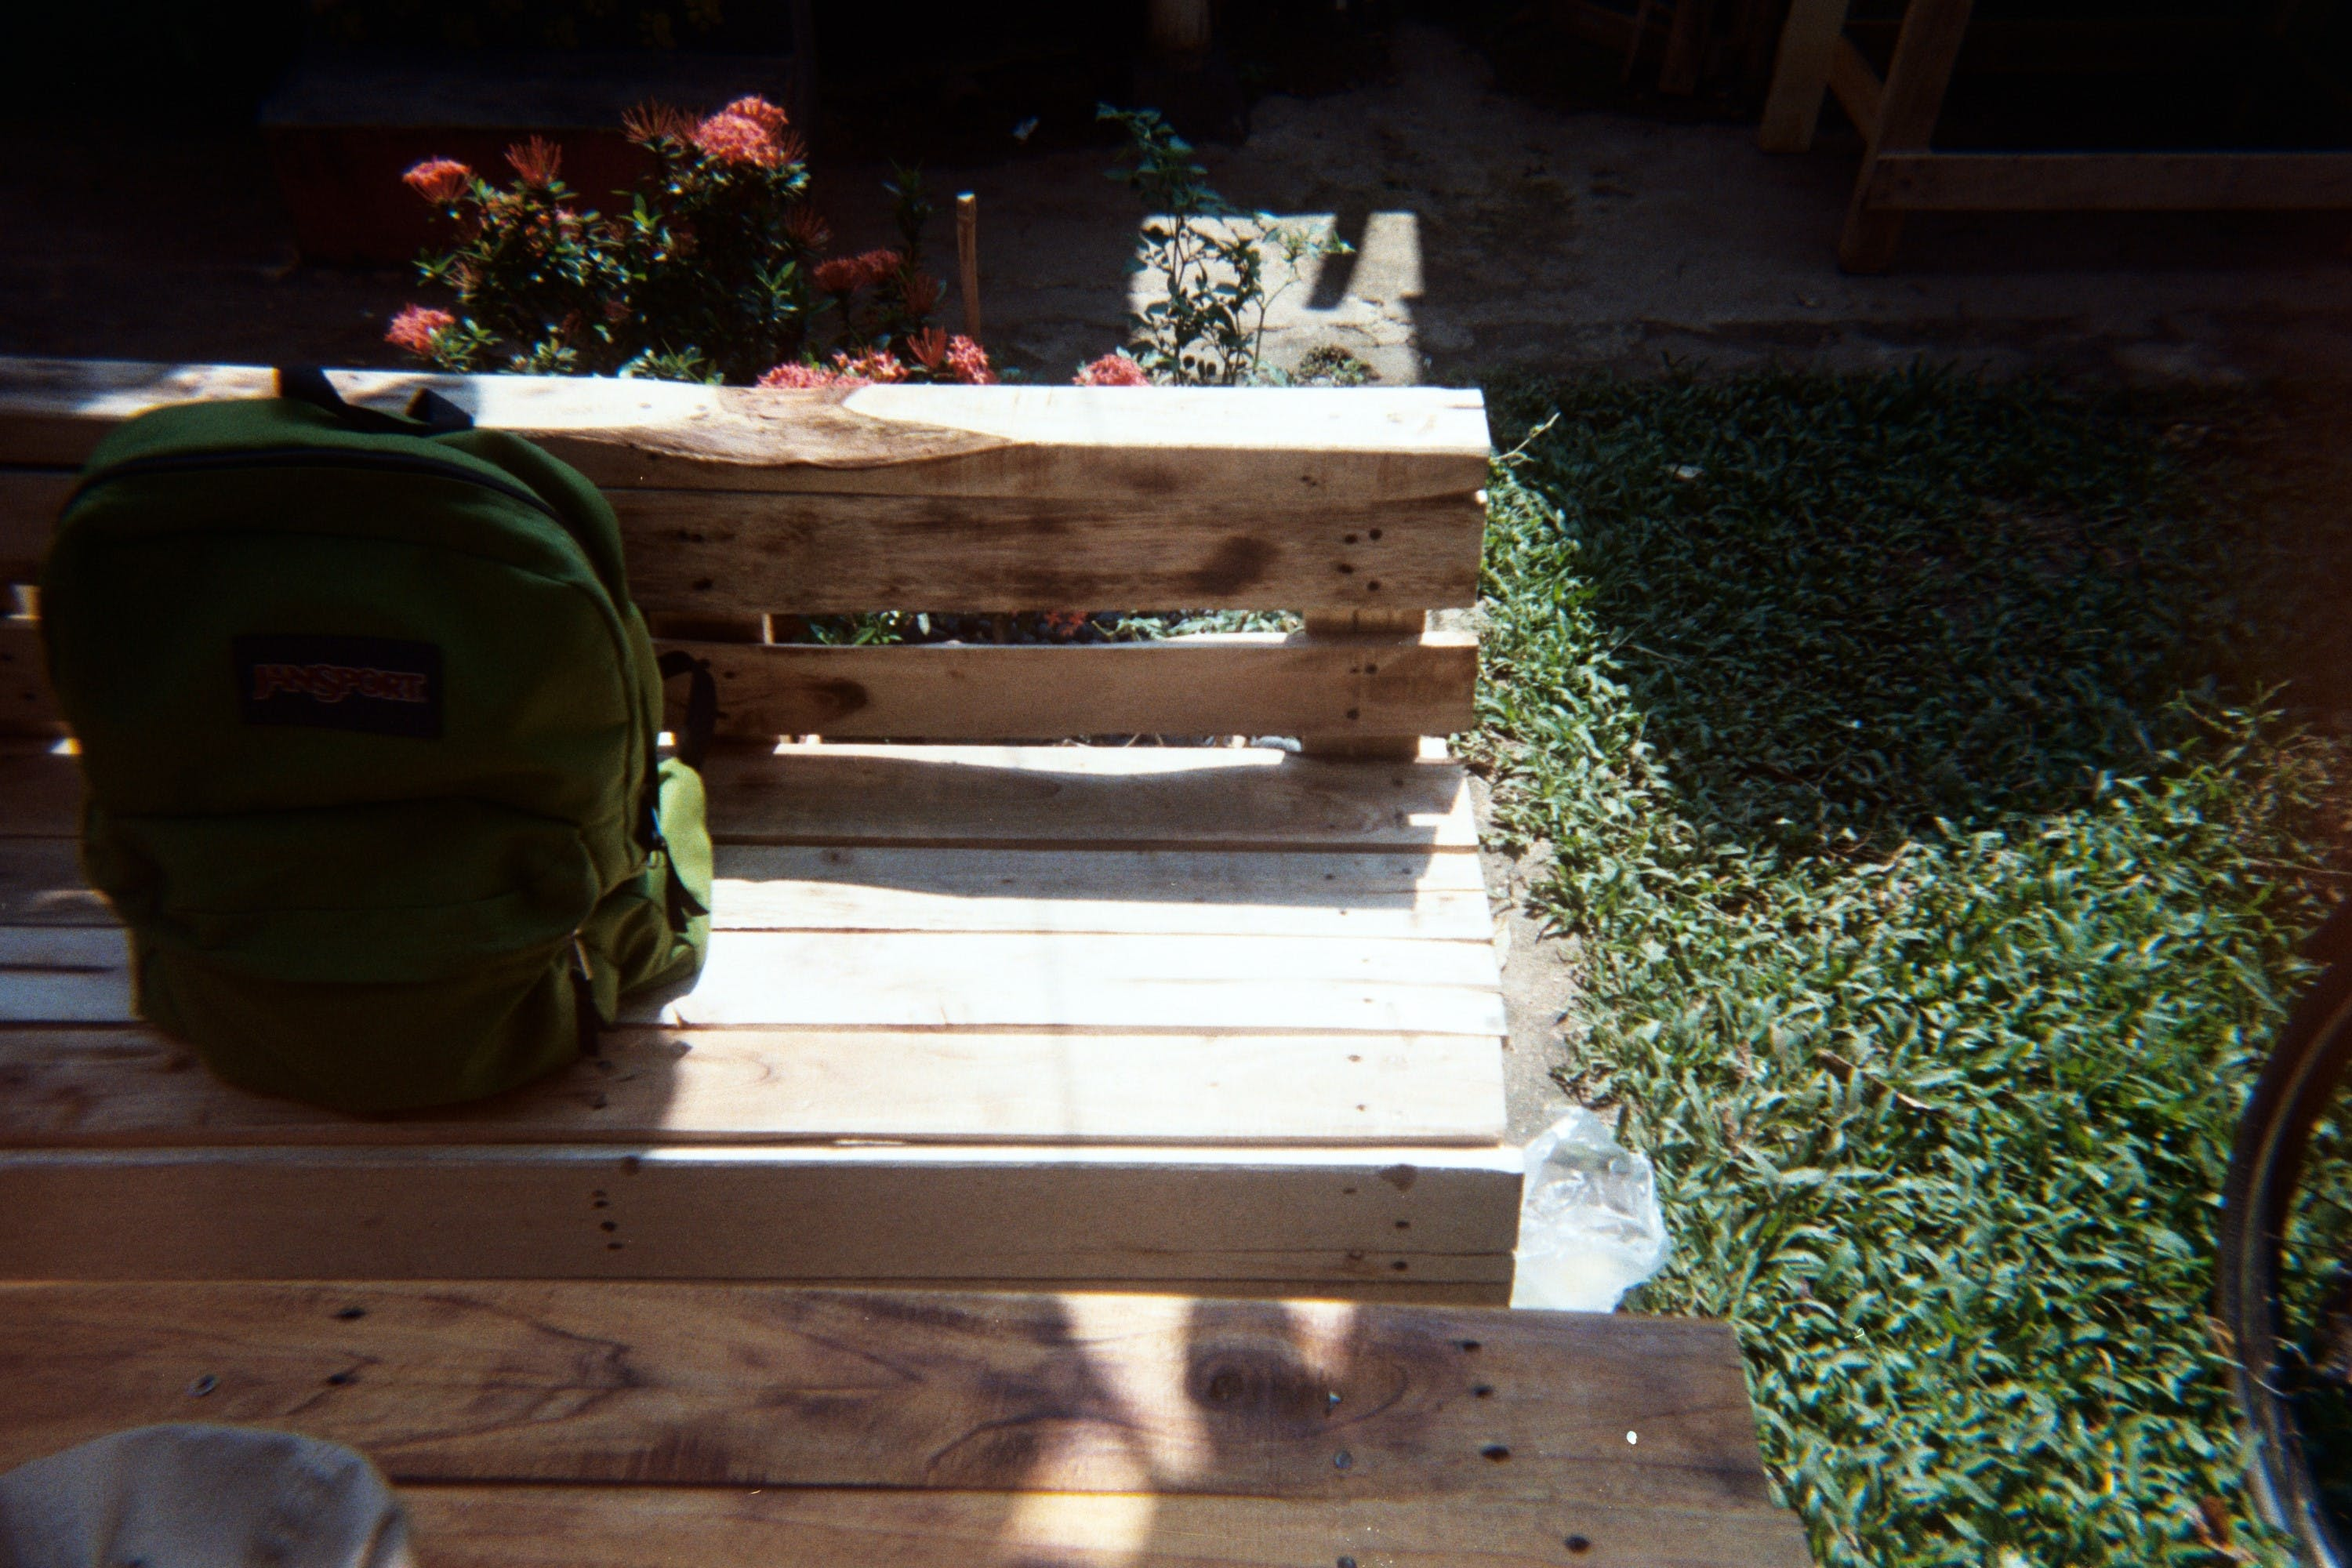 Backpack on Top of Bench